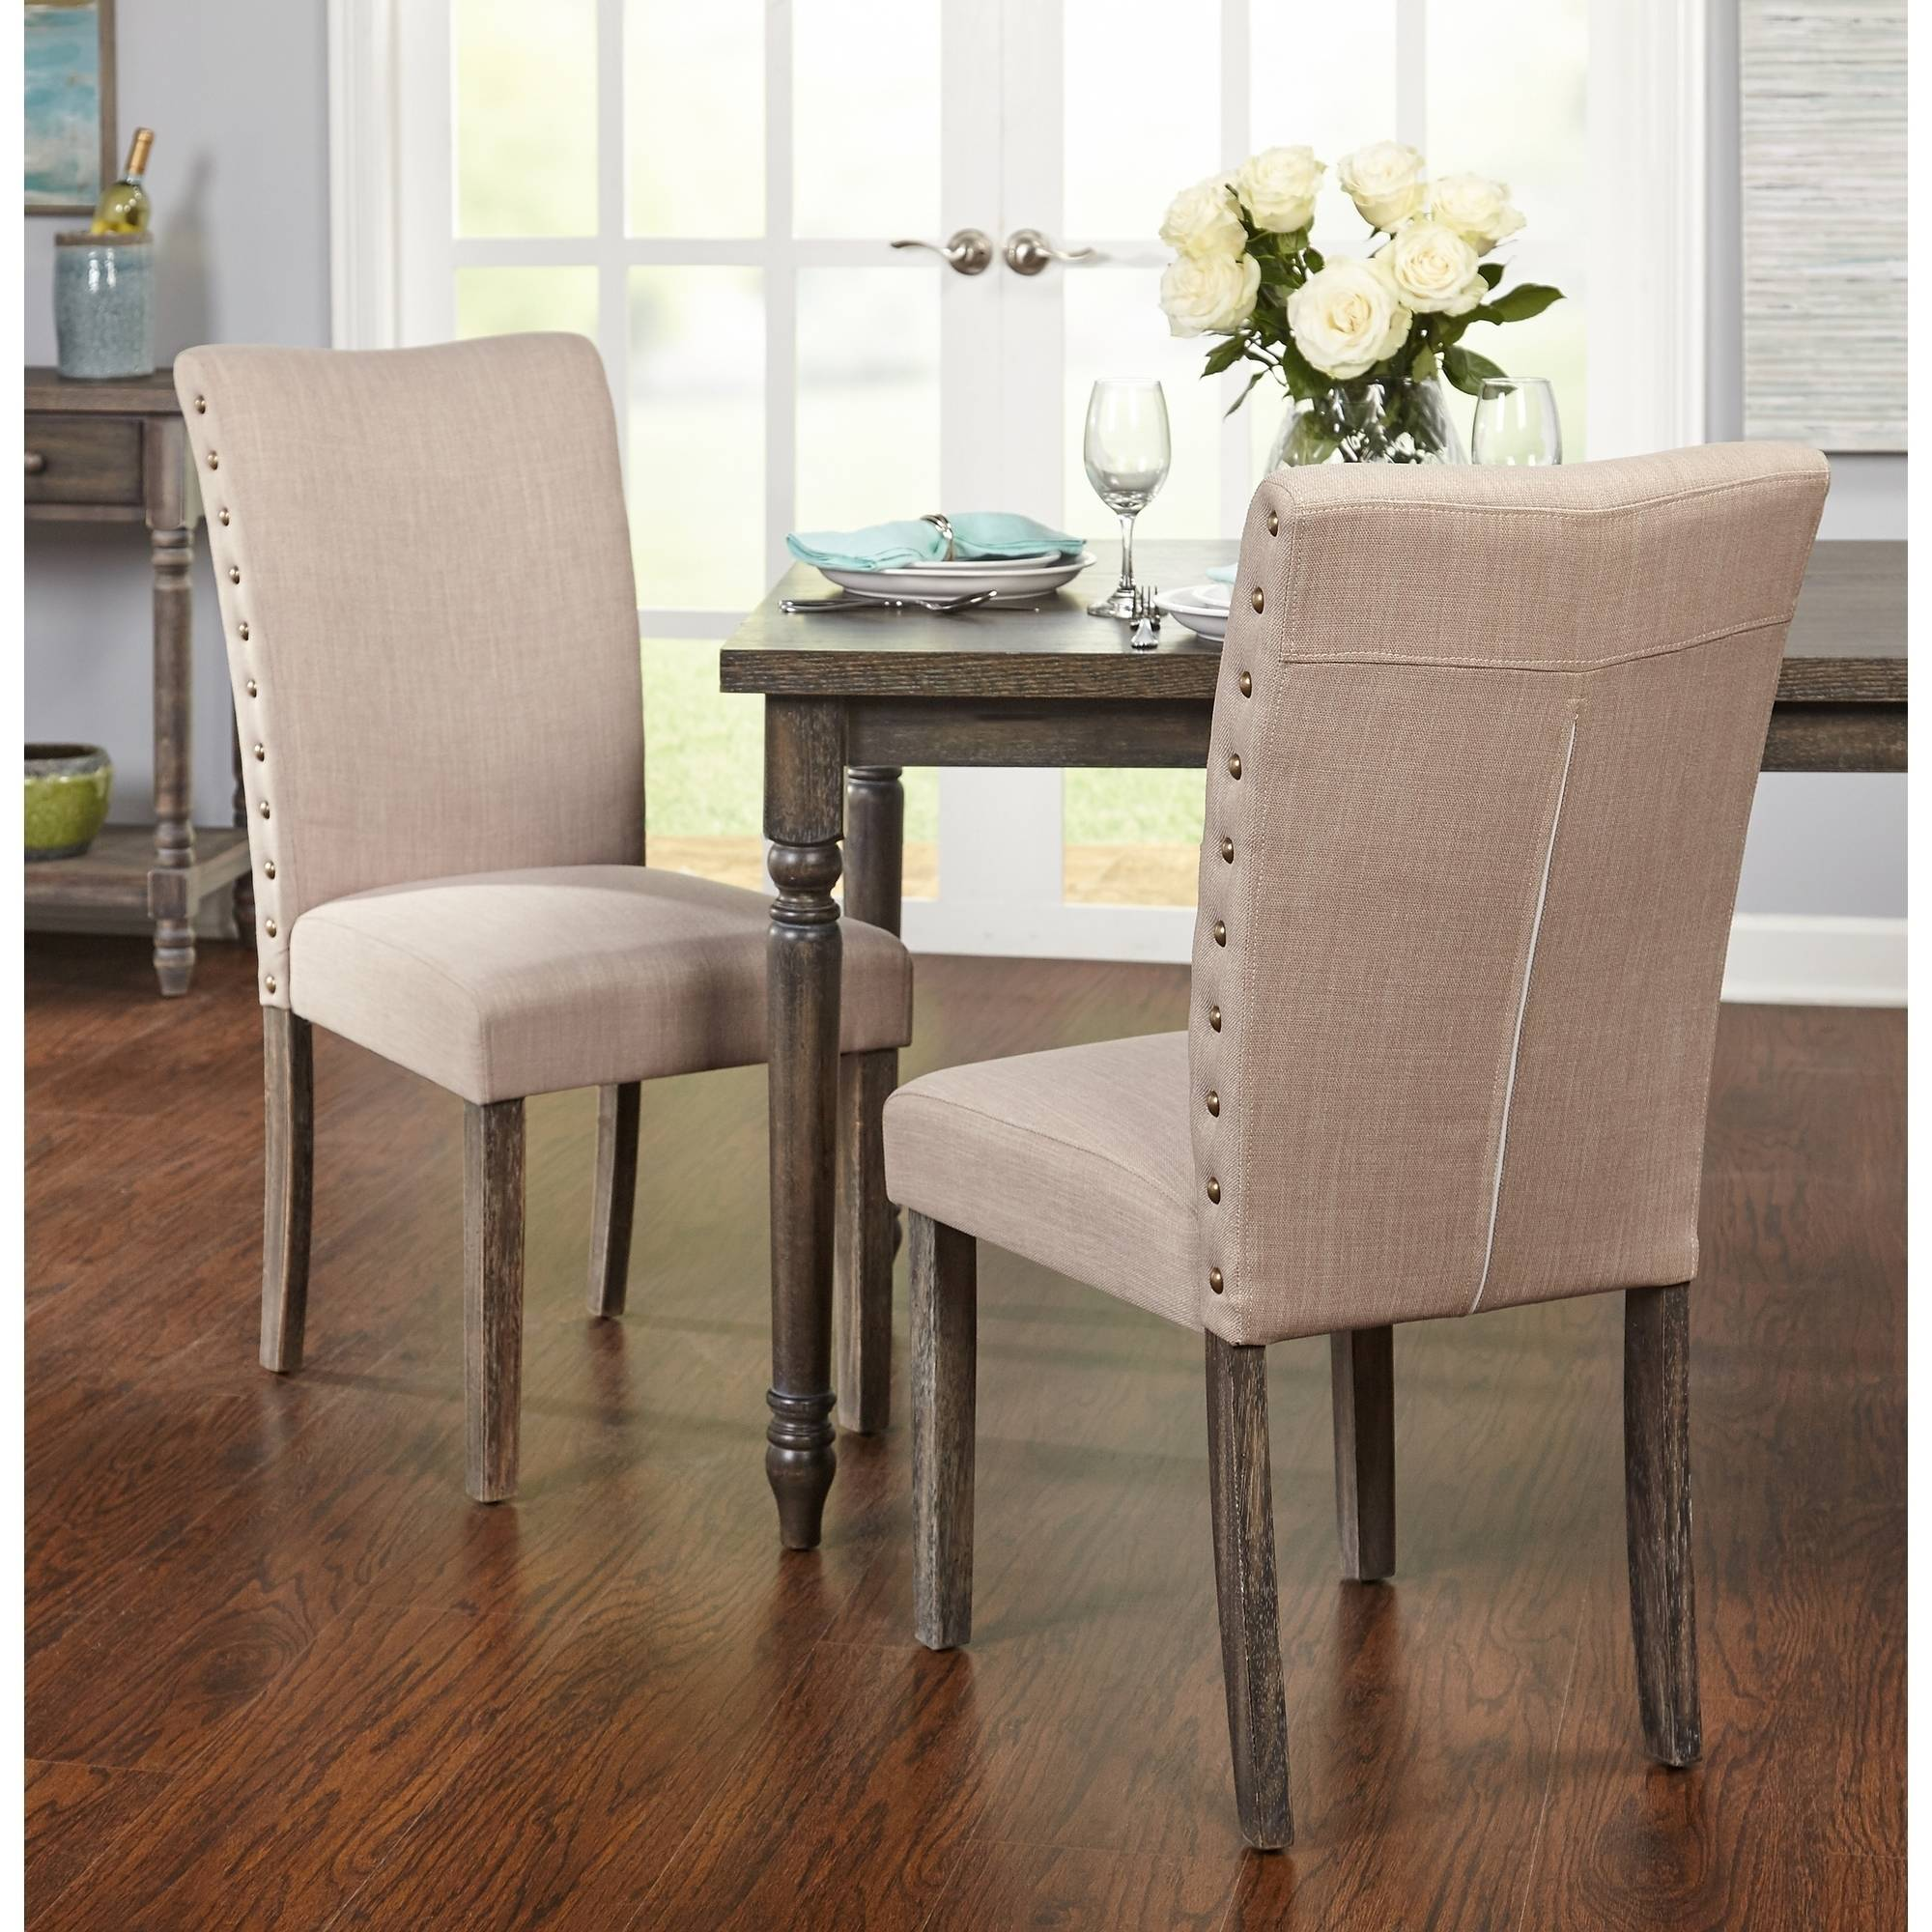 burswood parson chair set of 2 weathered gray